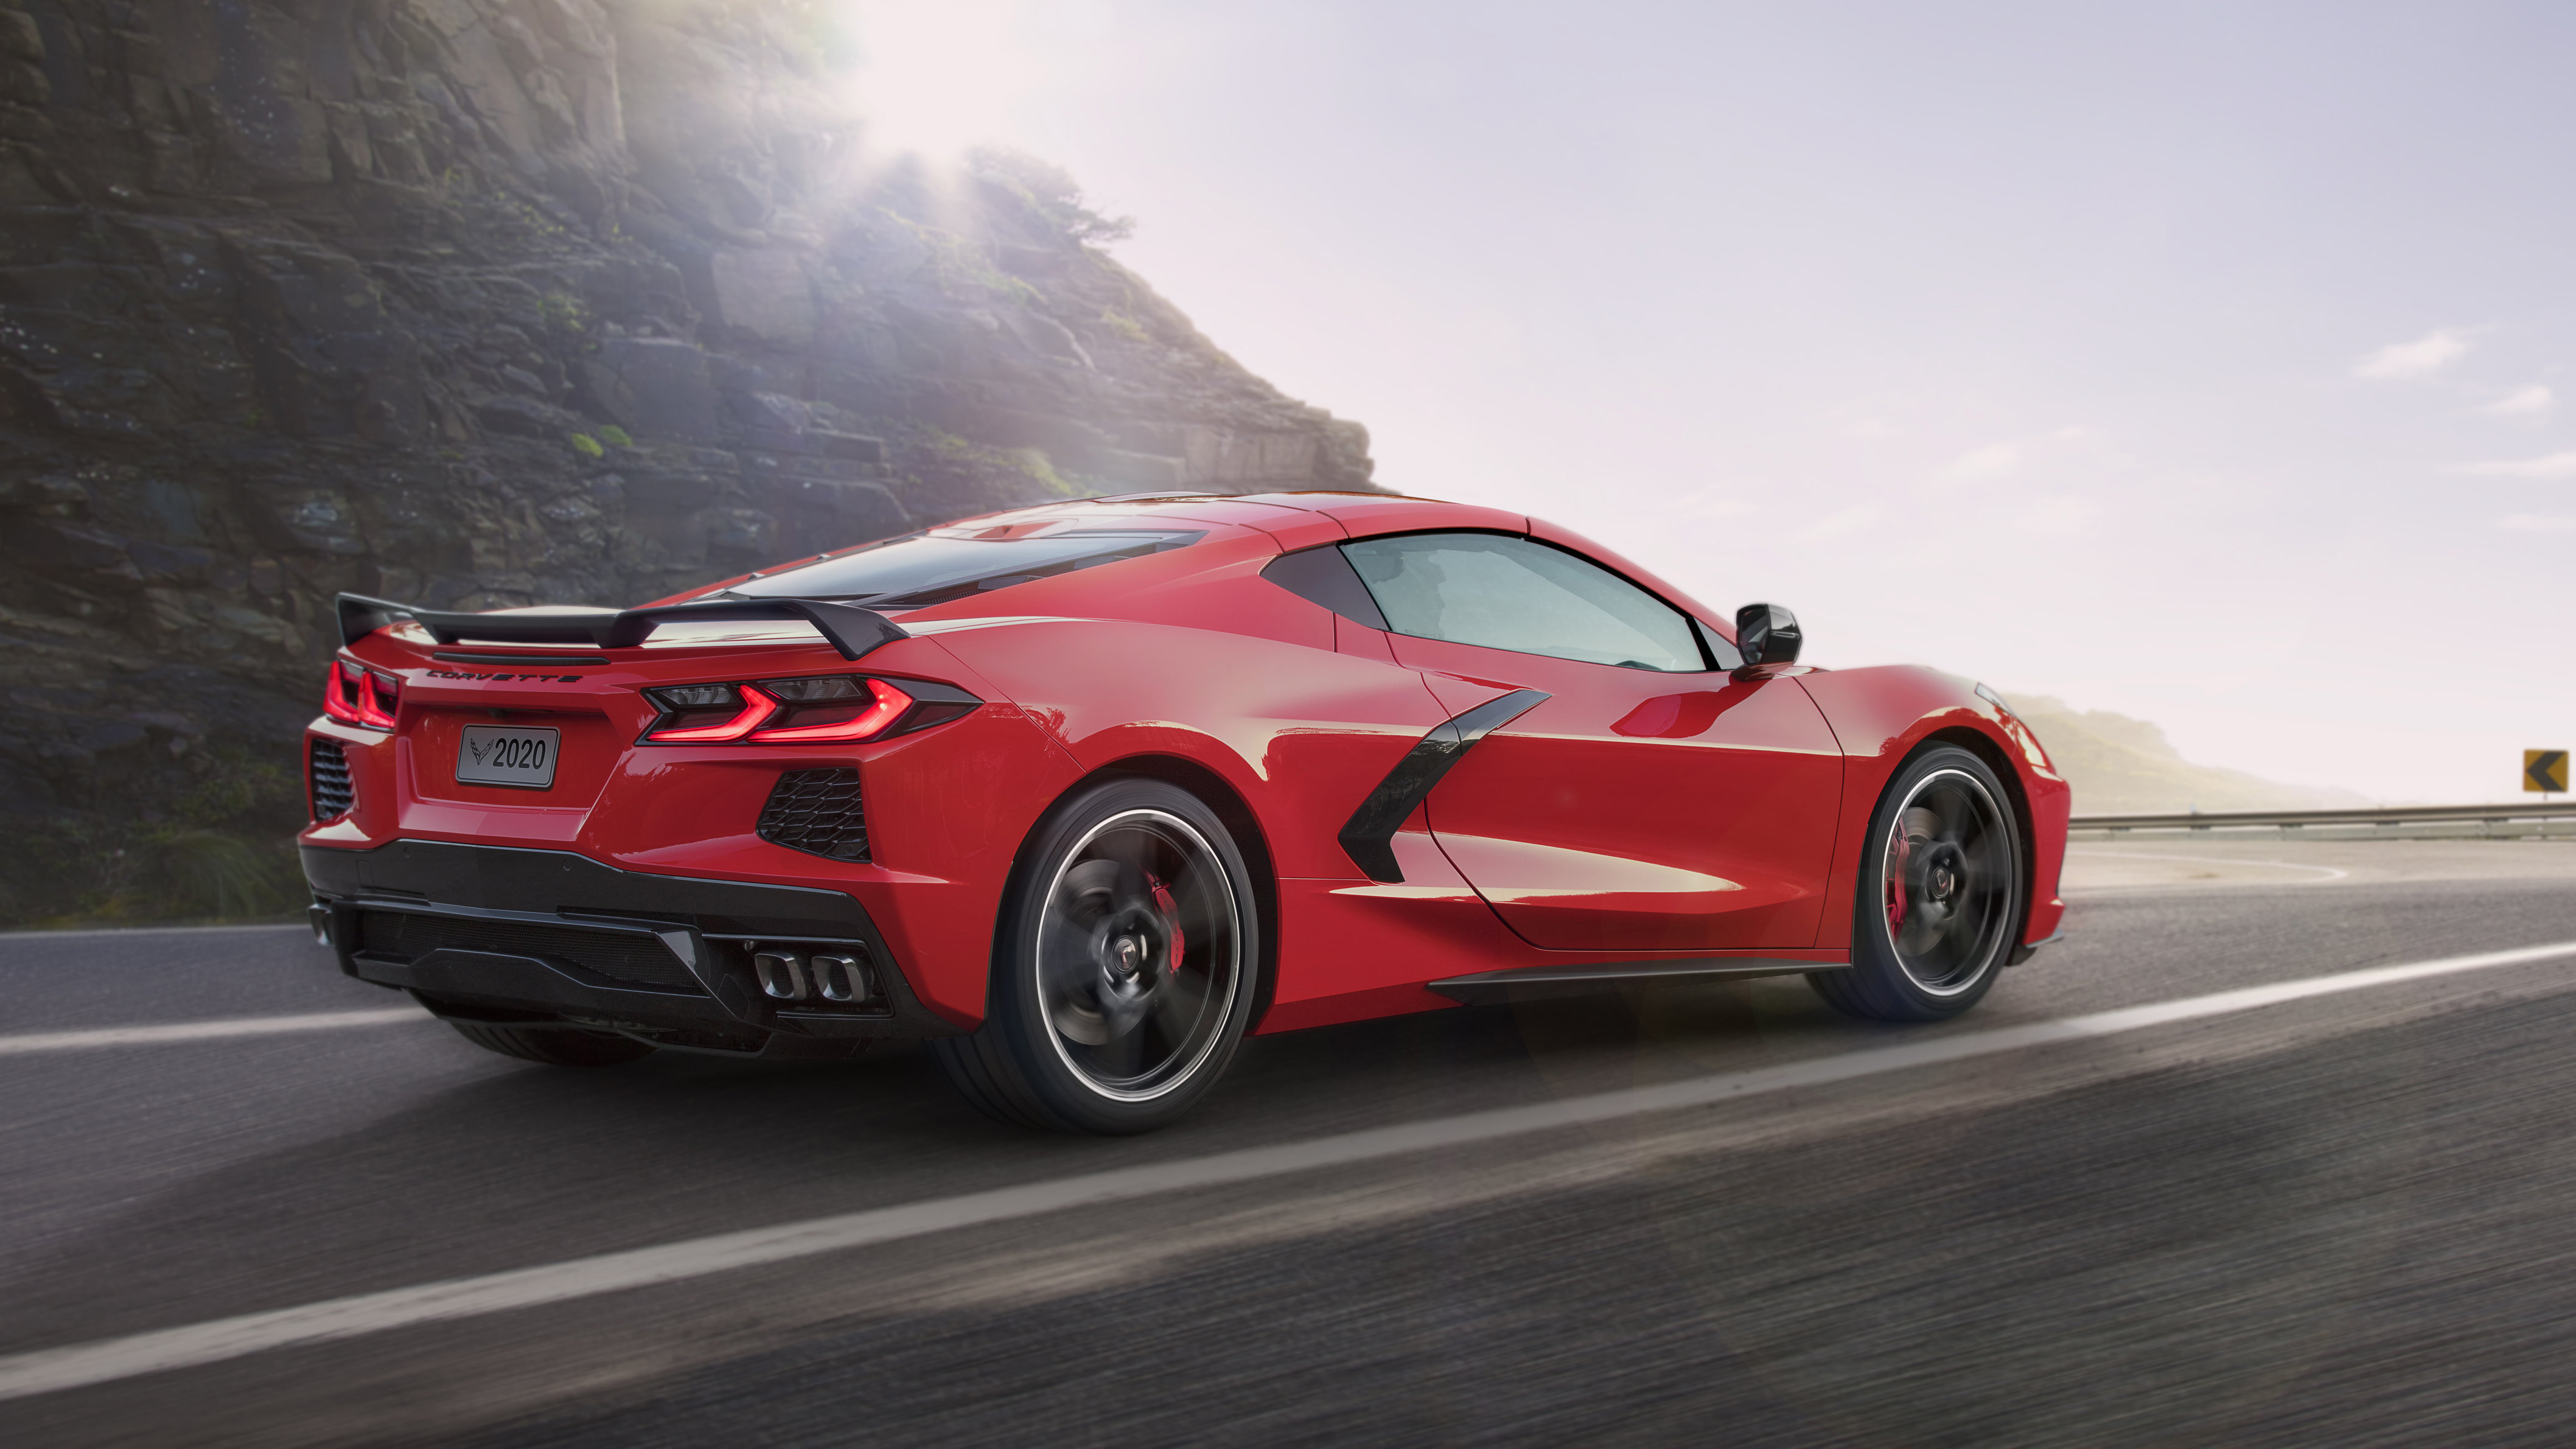 Everything You Should Know About The 2020 Chevrolet Corvette C8